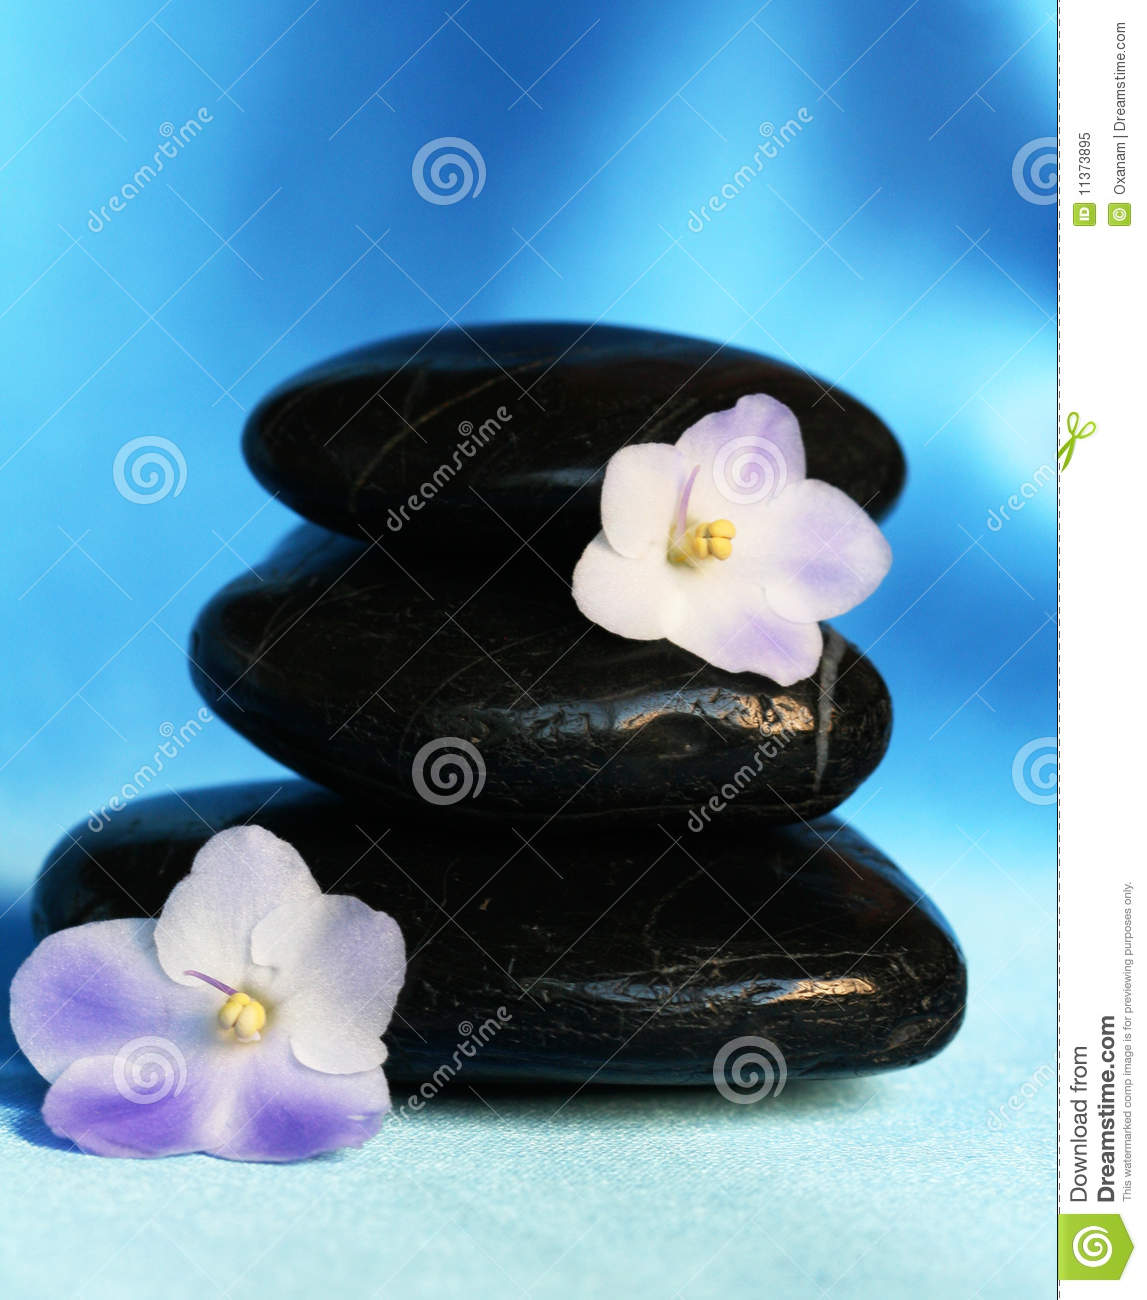 Spa Stones With Flowers On Blue Silk Background Stock Image Image